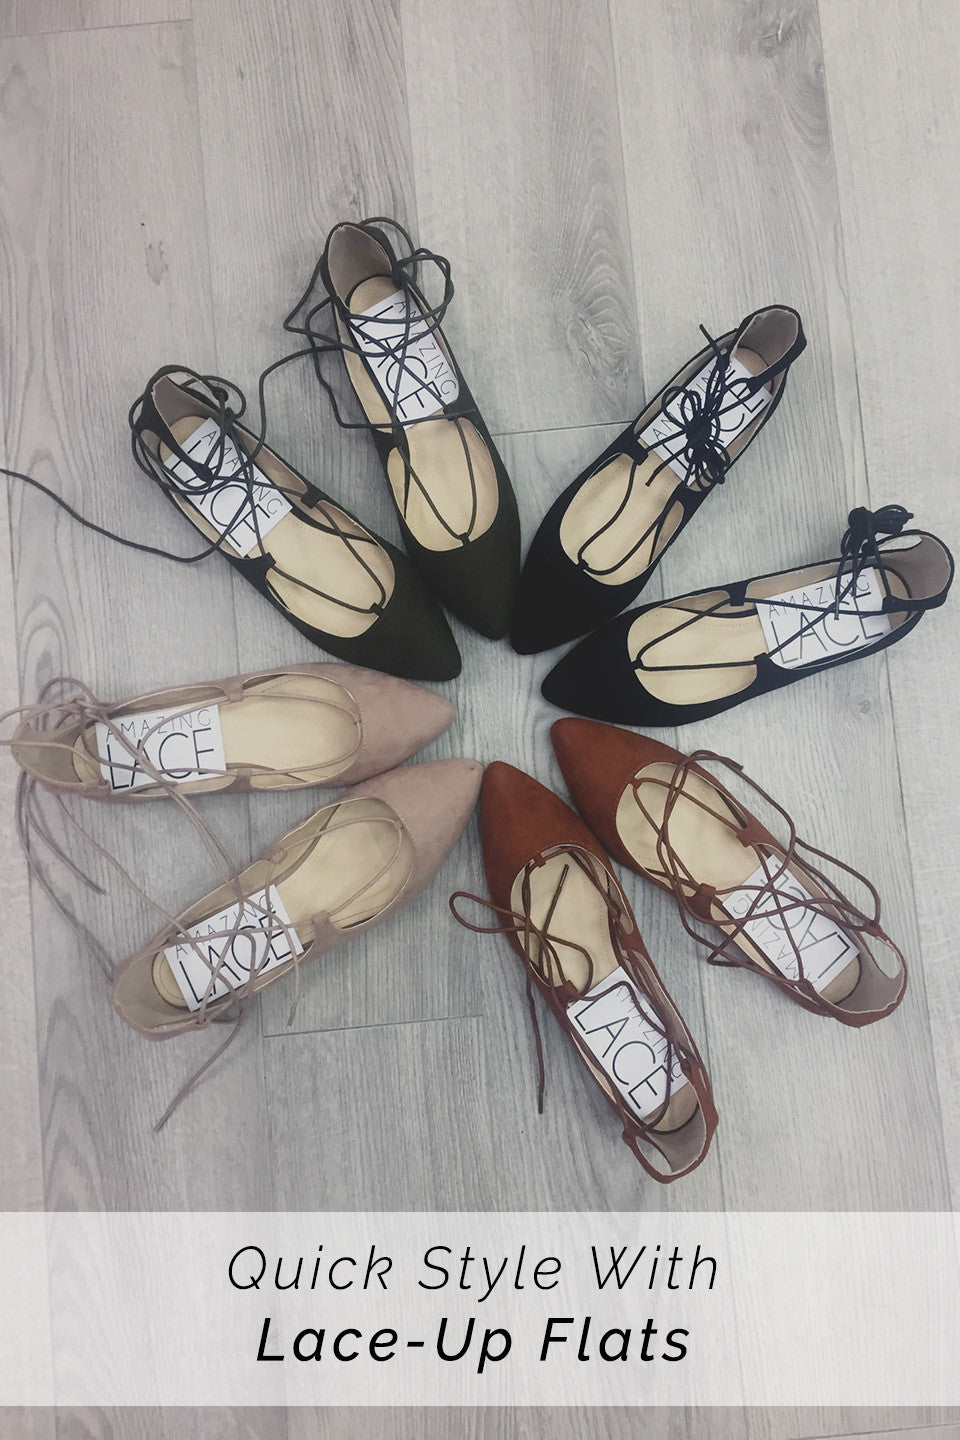 Quick Style With Lace-Up Flats